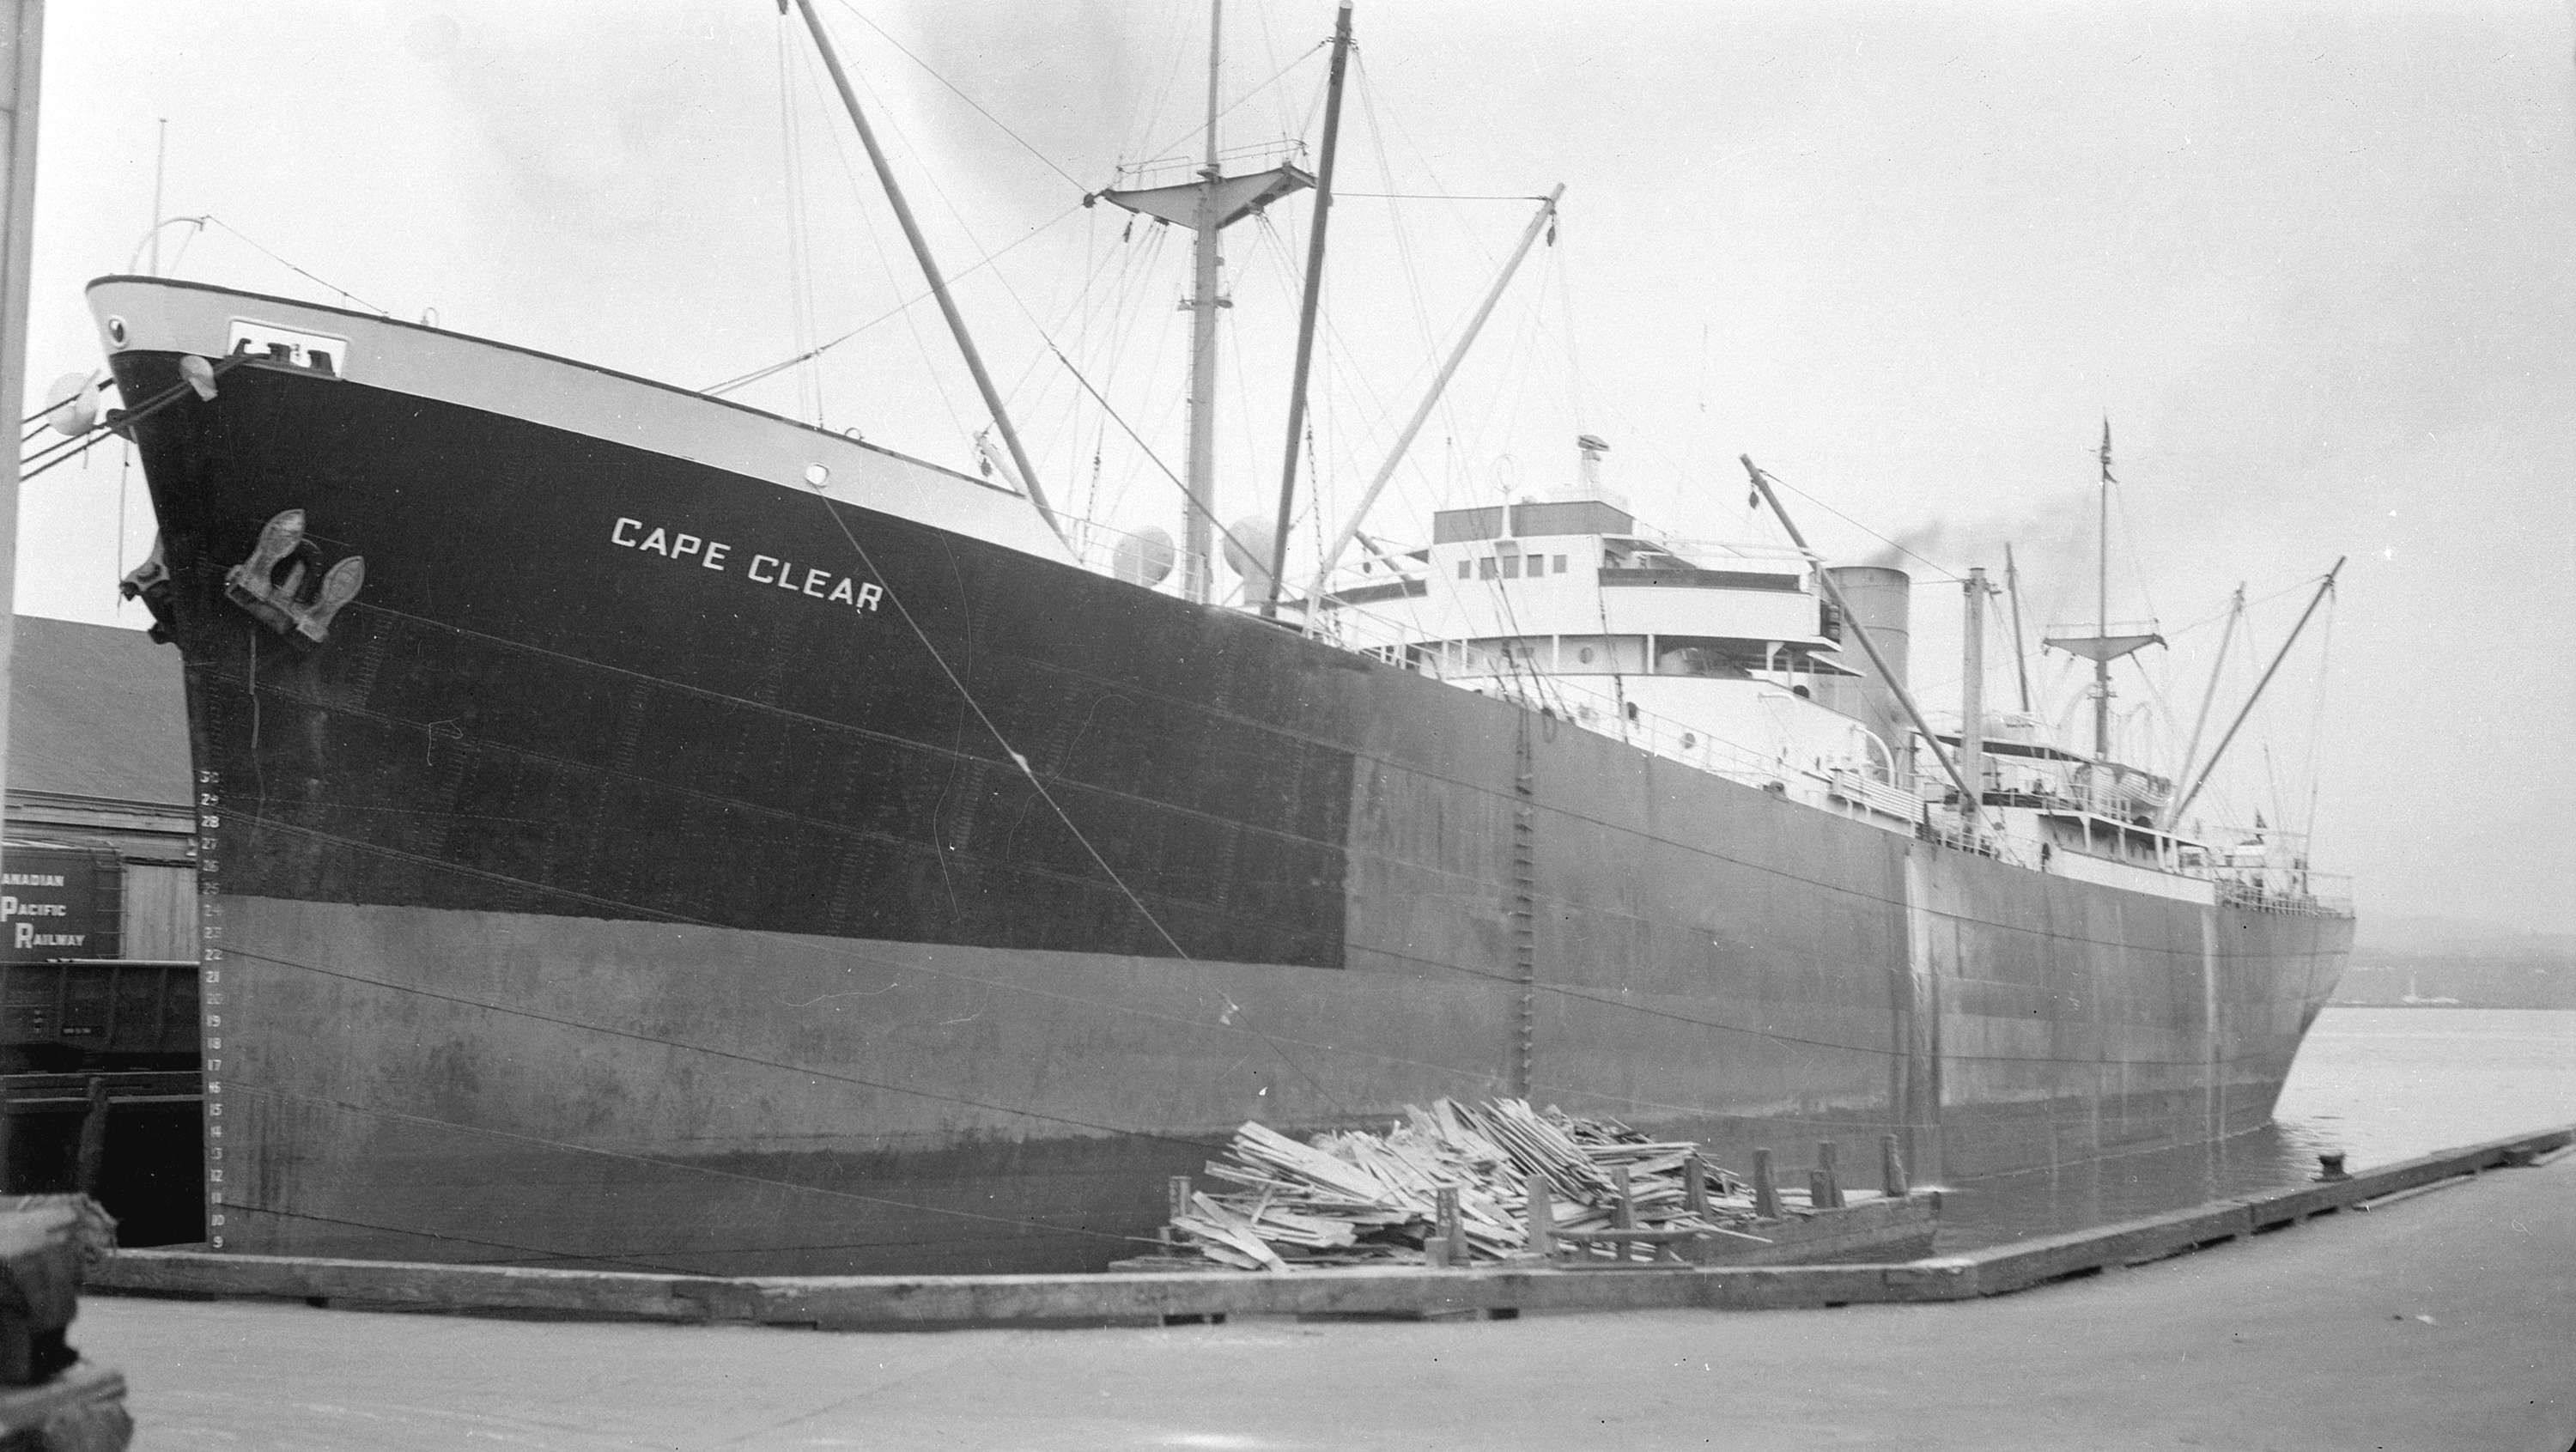 MV Cape Clear - built in Glasgow in 1939; went down in the Red Sea 1944